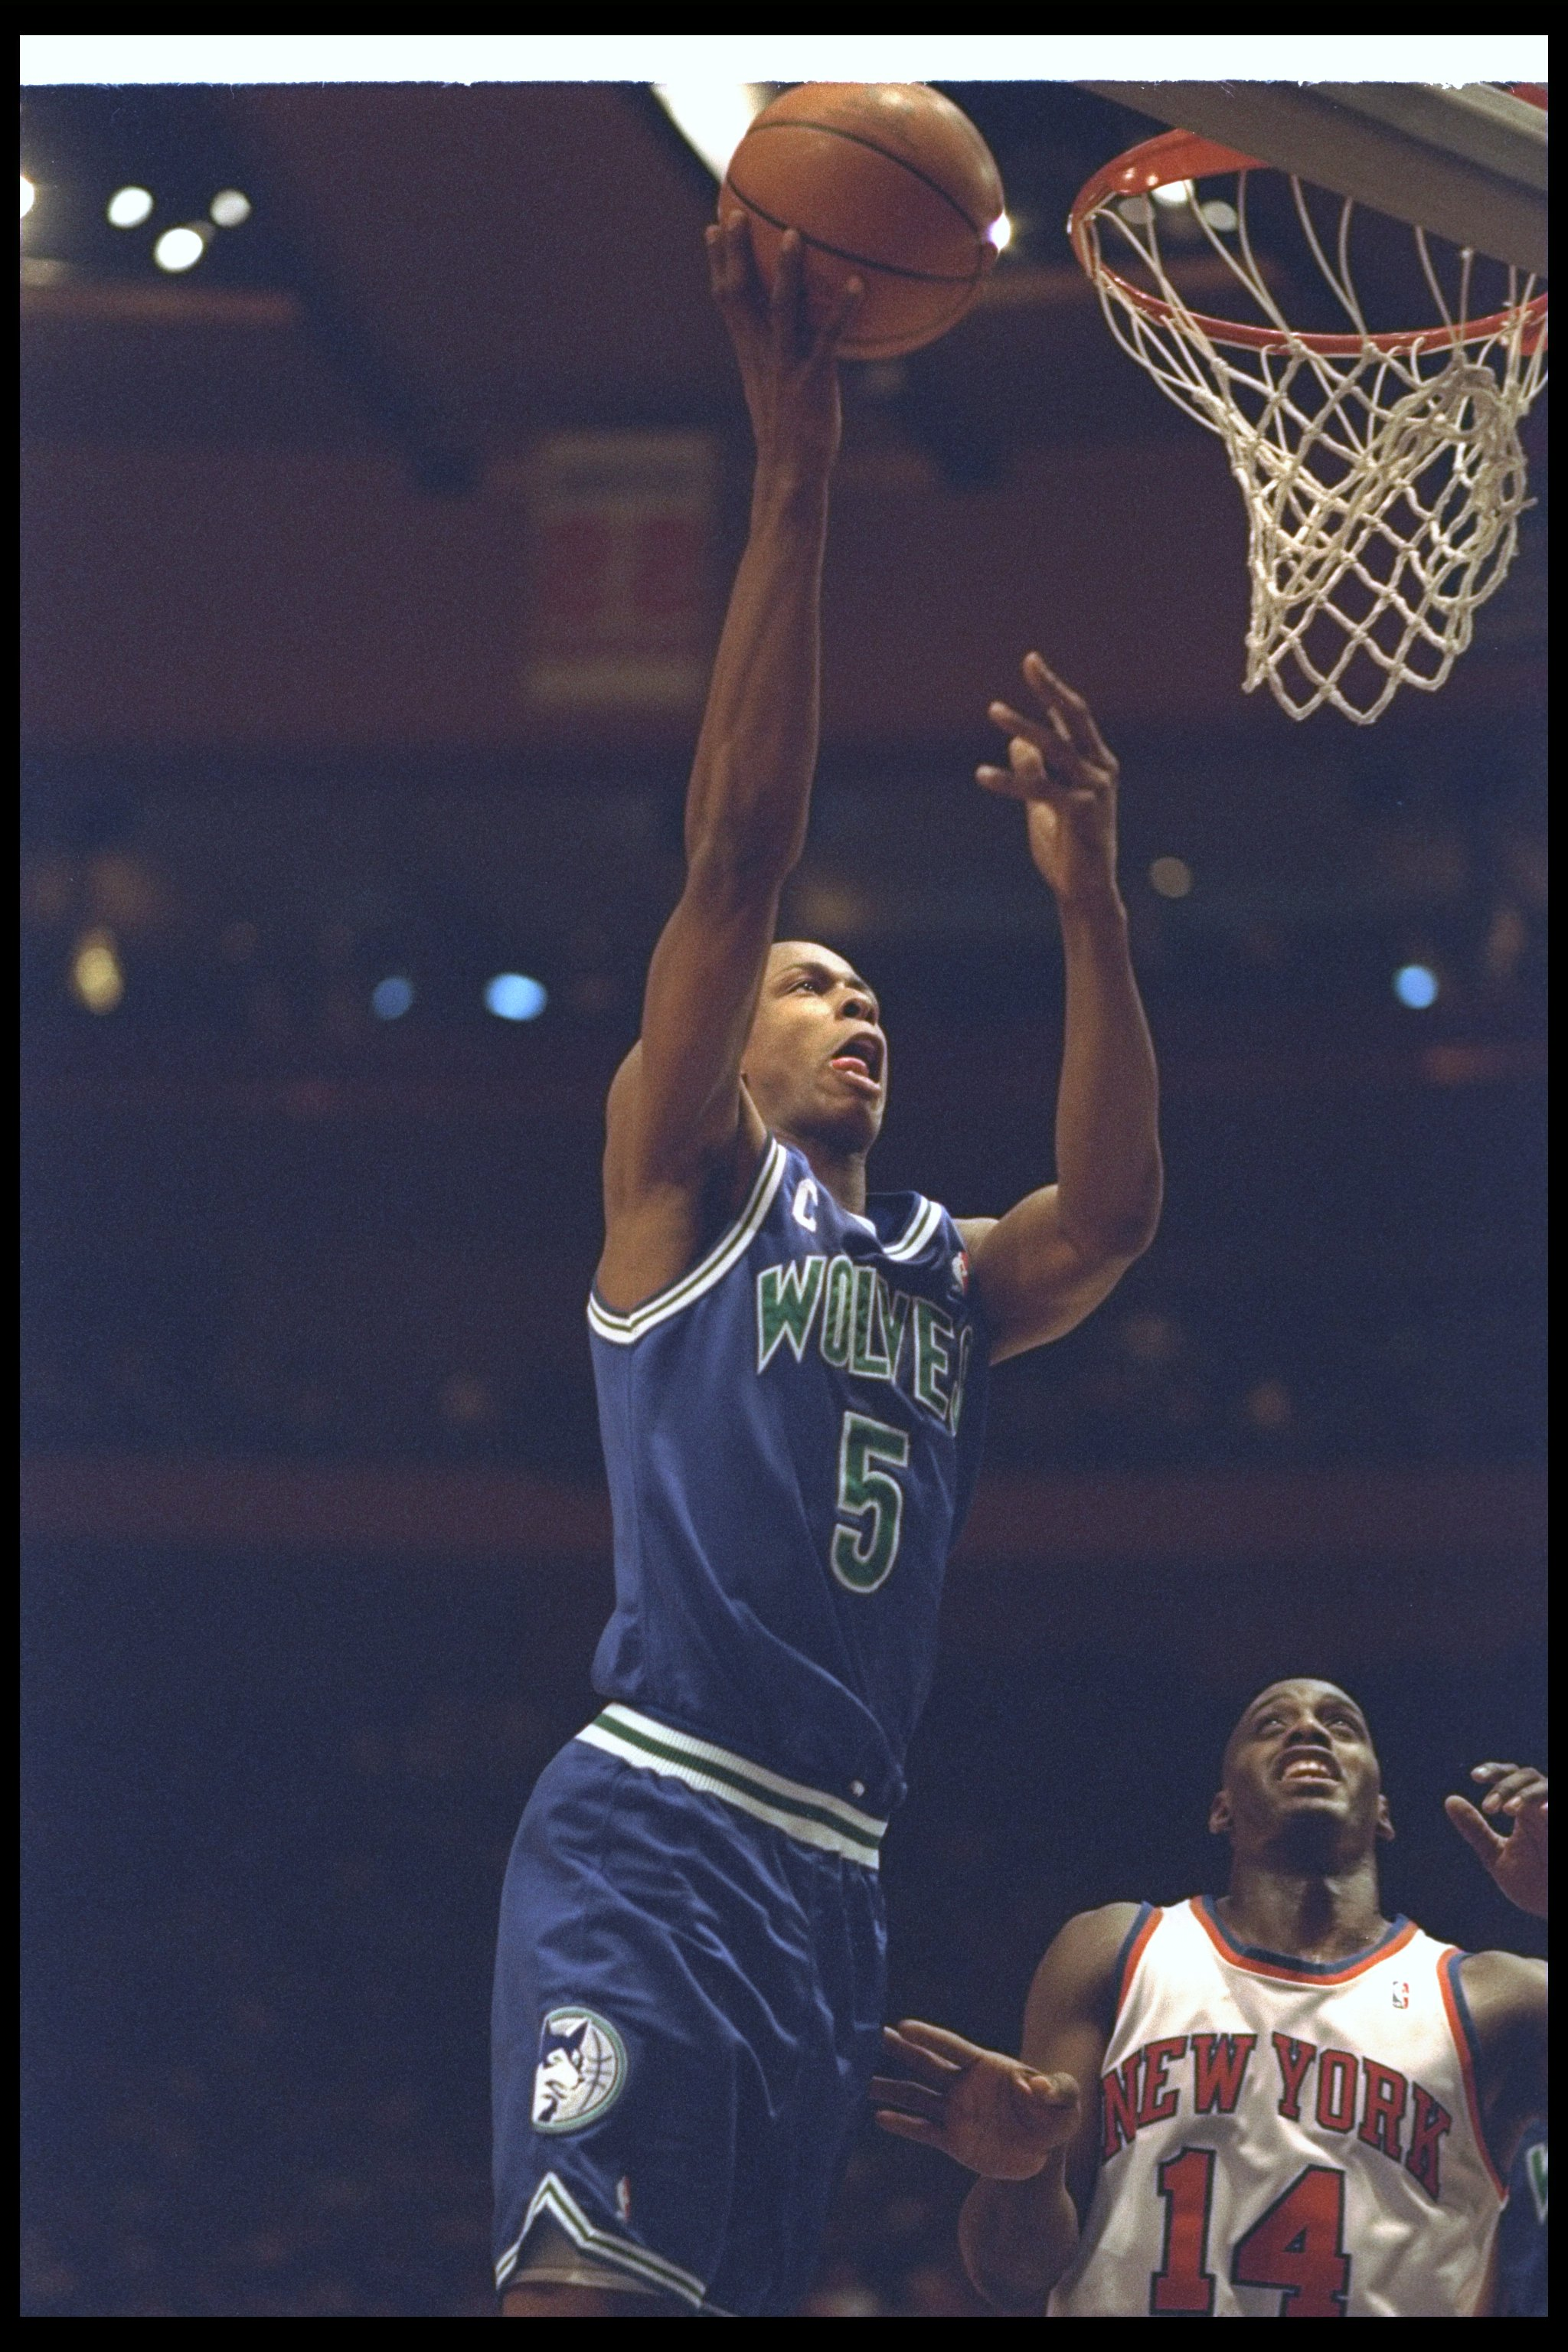 Guard Doug West of the Minnesota Timberwolves goes up for two during a game against the New York Knicks at Madison Square Garden in New York City, New York.